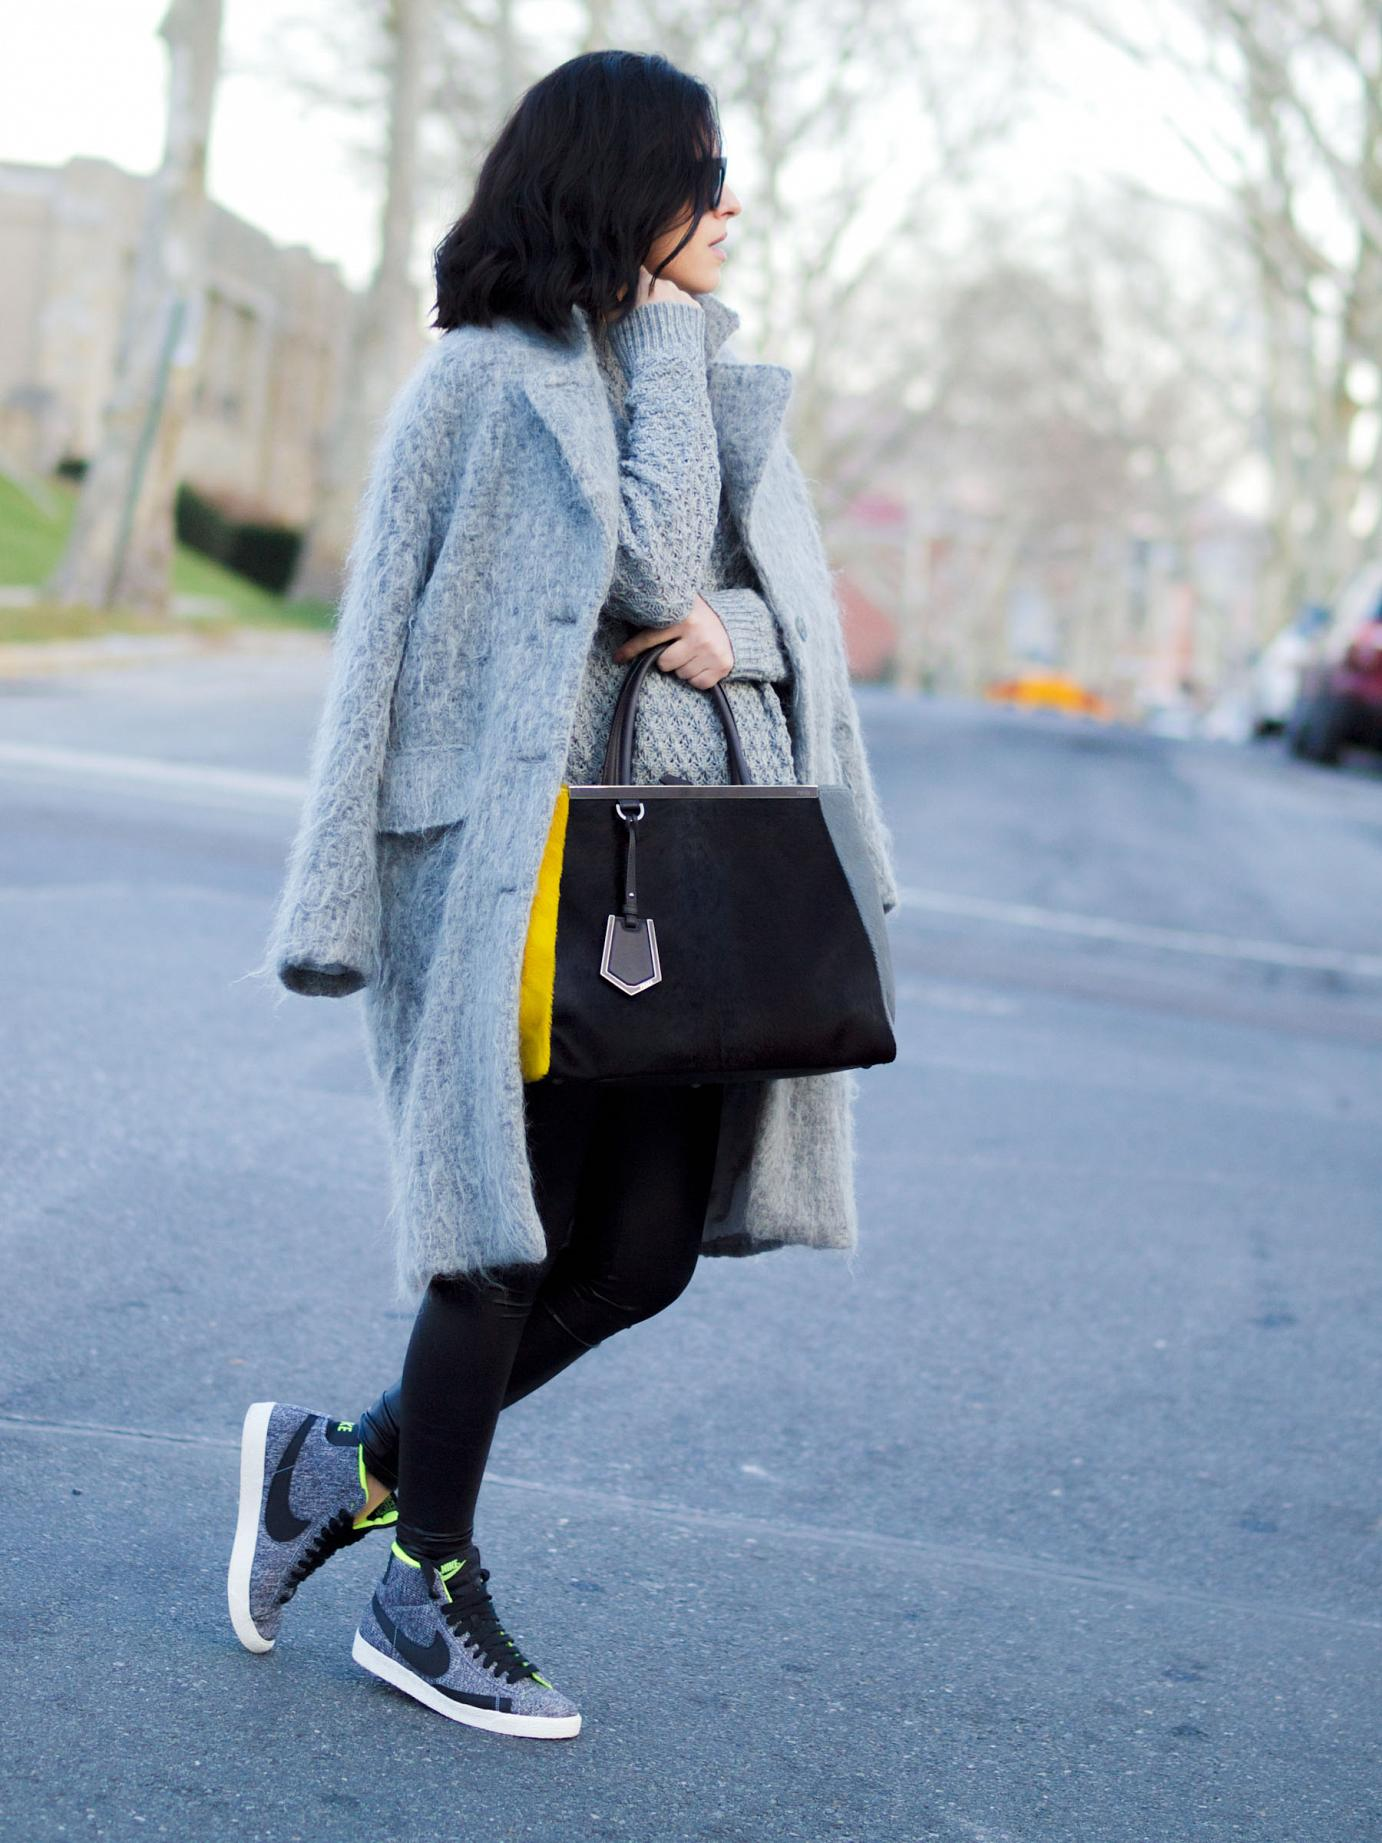 bittersweet colours, street style, fuzzy coat, grey coat, nike sneakers, sneakers trend, 2jours bicolor fendi bag, fendi bag, maternity style, 29 weeks, casual look, cable knit sweater, winter coats,